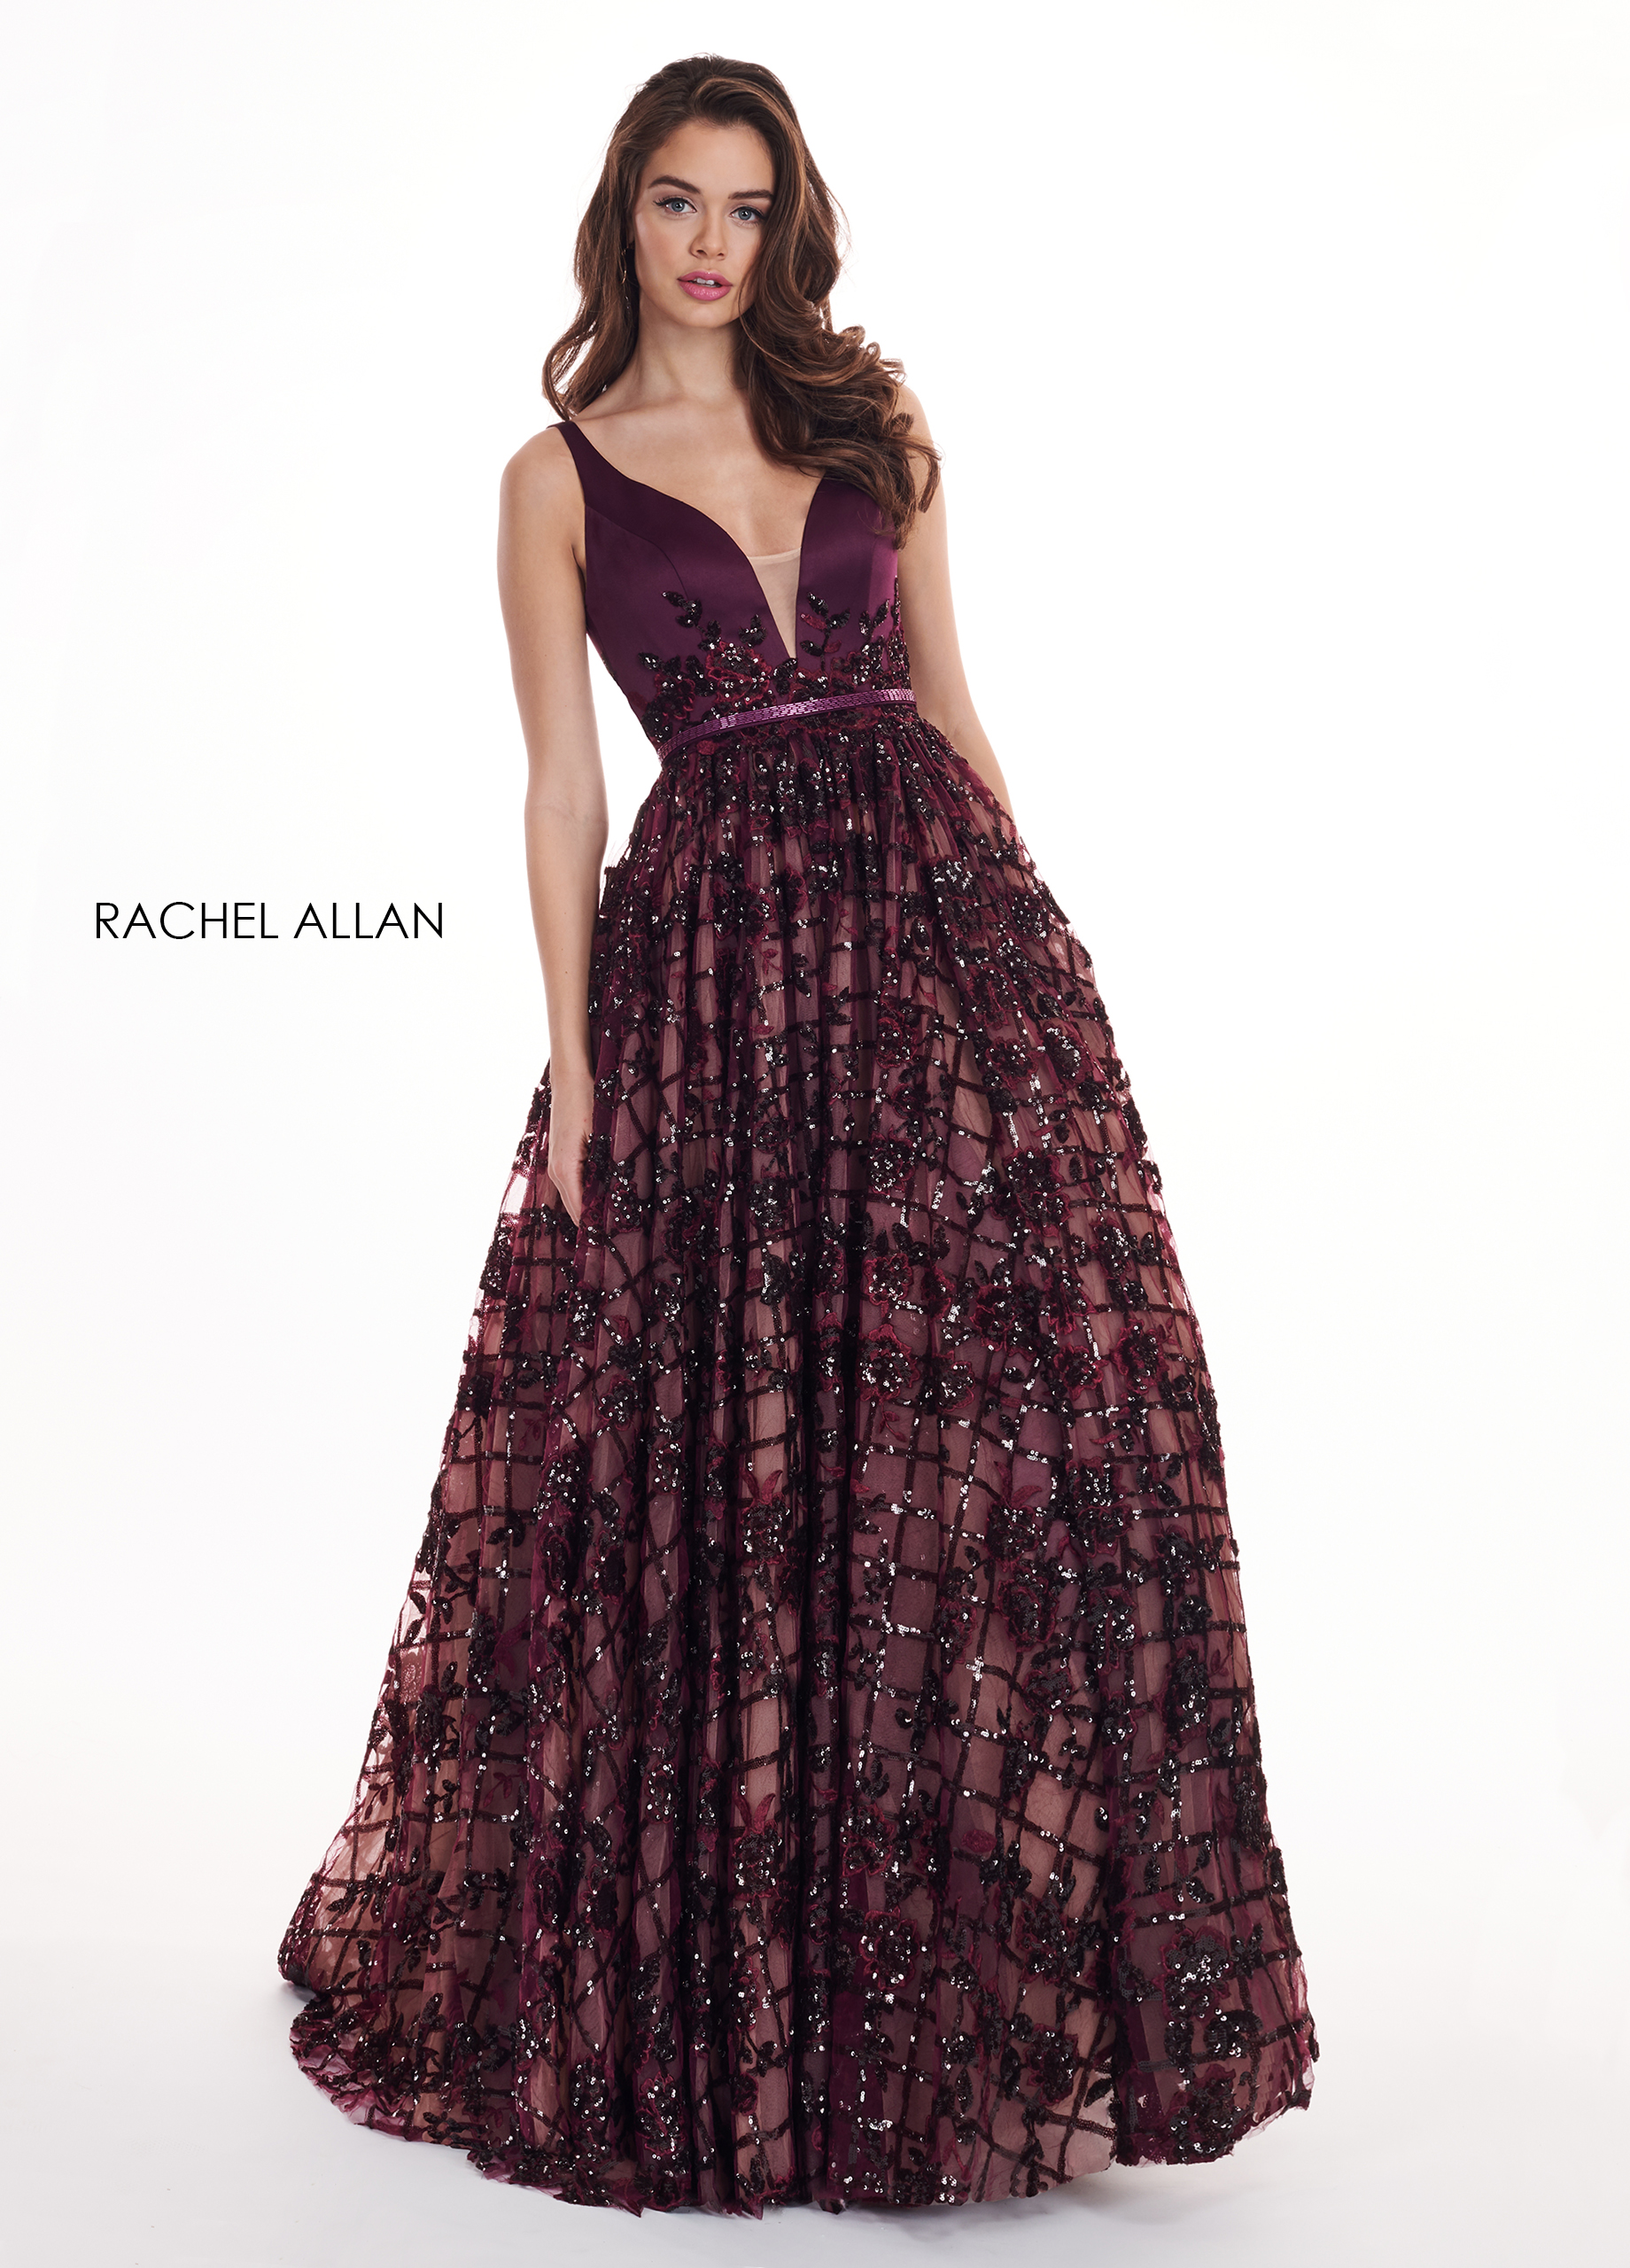 V-Neck Ball Gowns BEST SELLERS in Purple Color